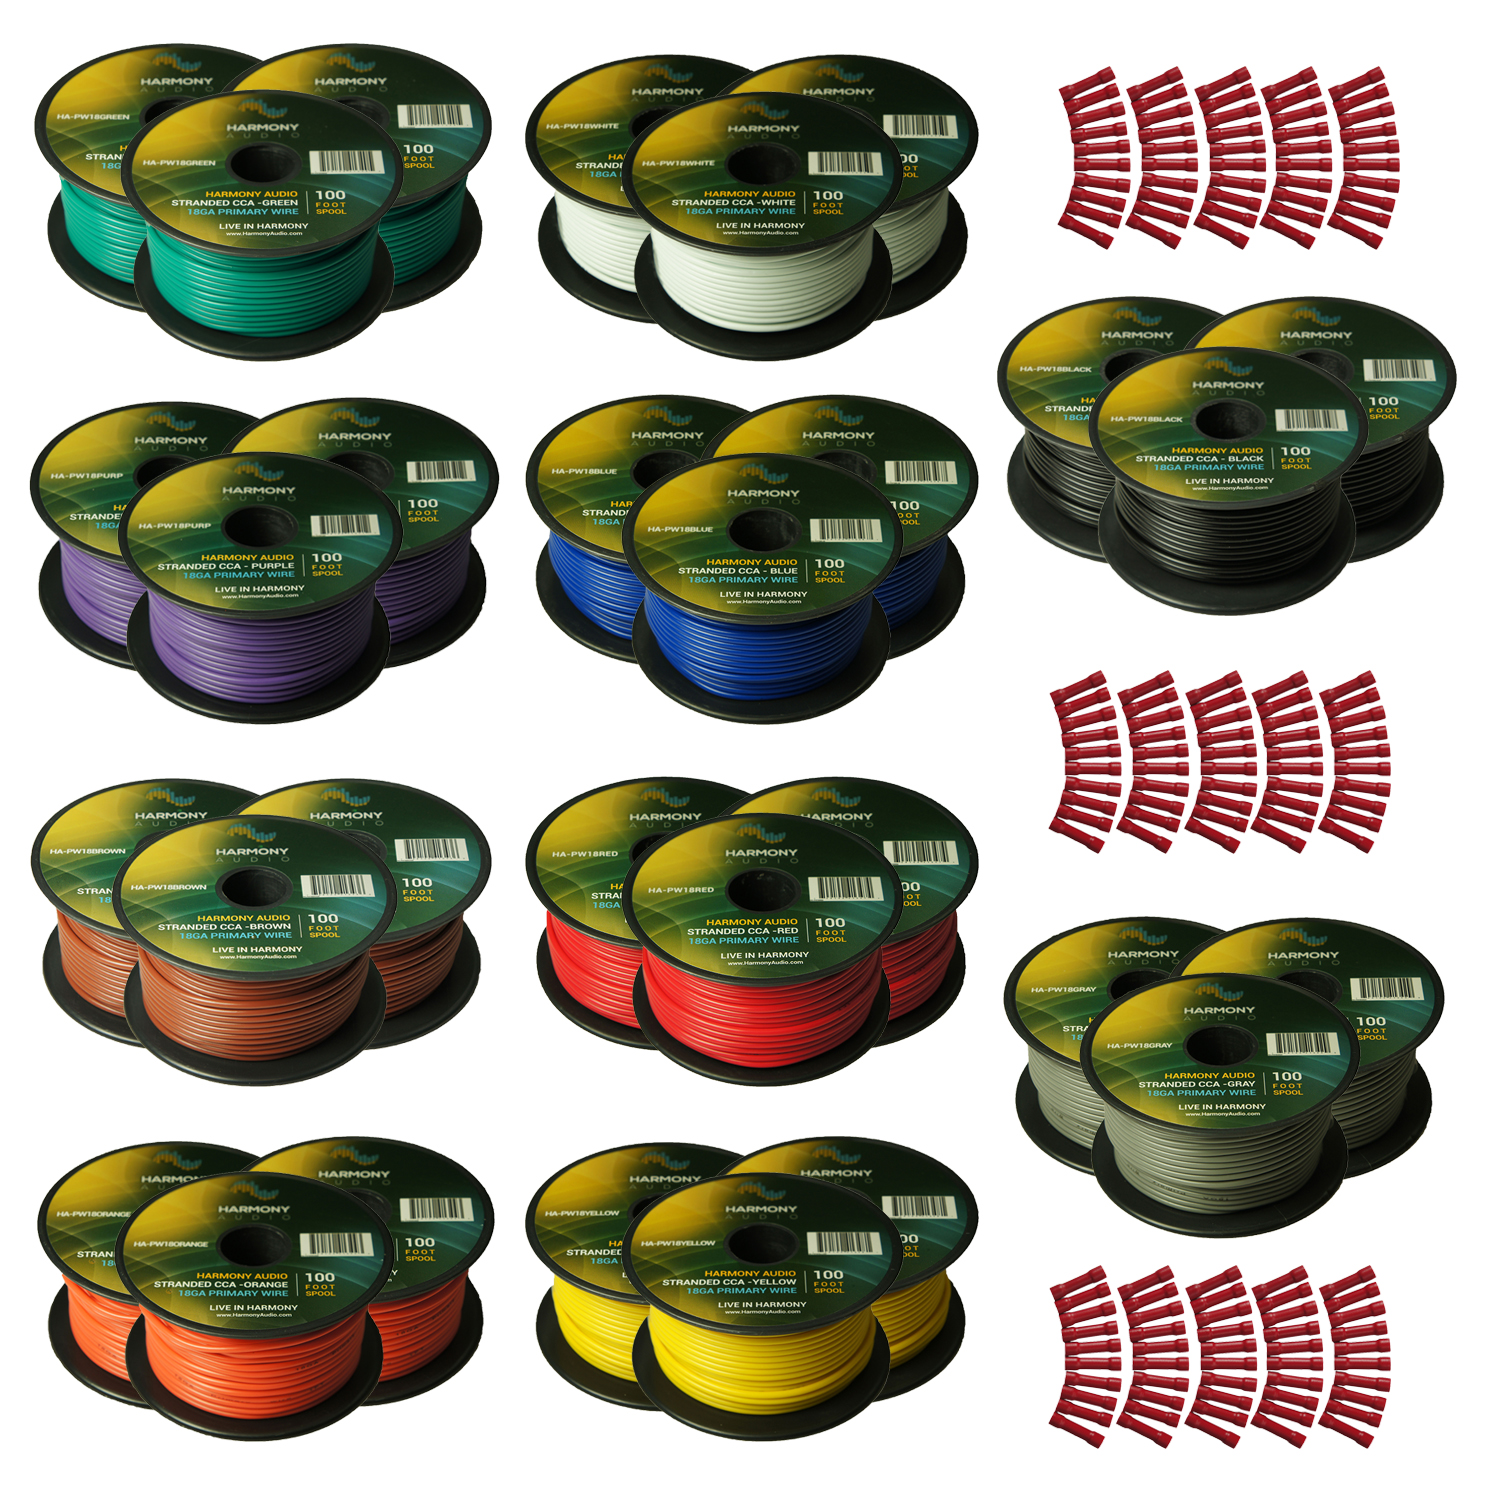 Harmony Audio Primary Single Conductor 18 Gauge Power or Ground Wire - 30 Rolls - 2000 Feet - Color Mix for Car Audio / Trailer / Model Train / Remote